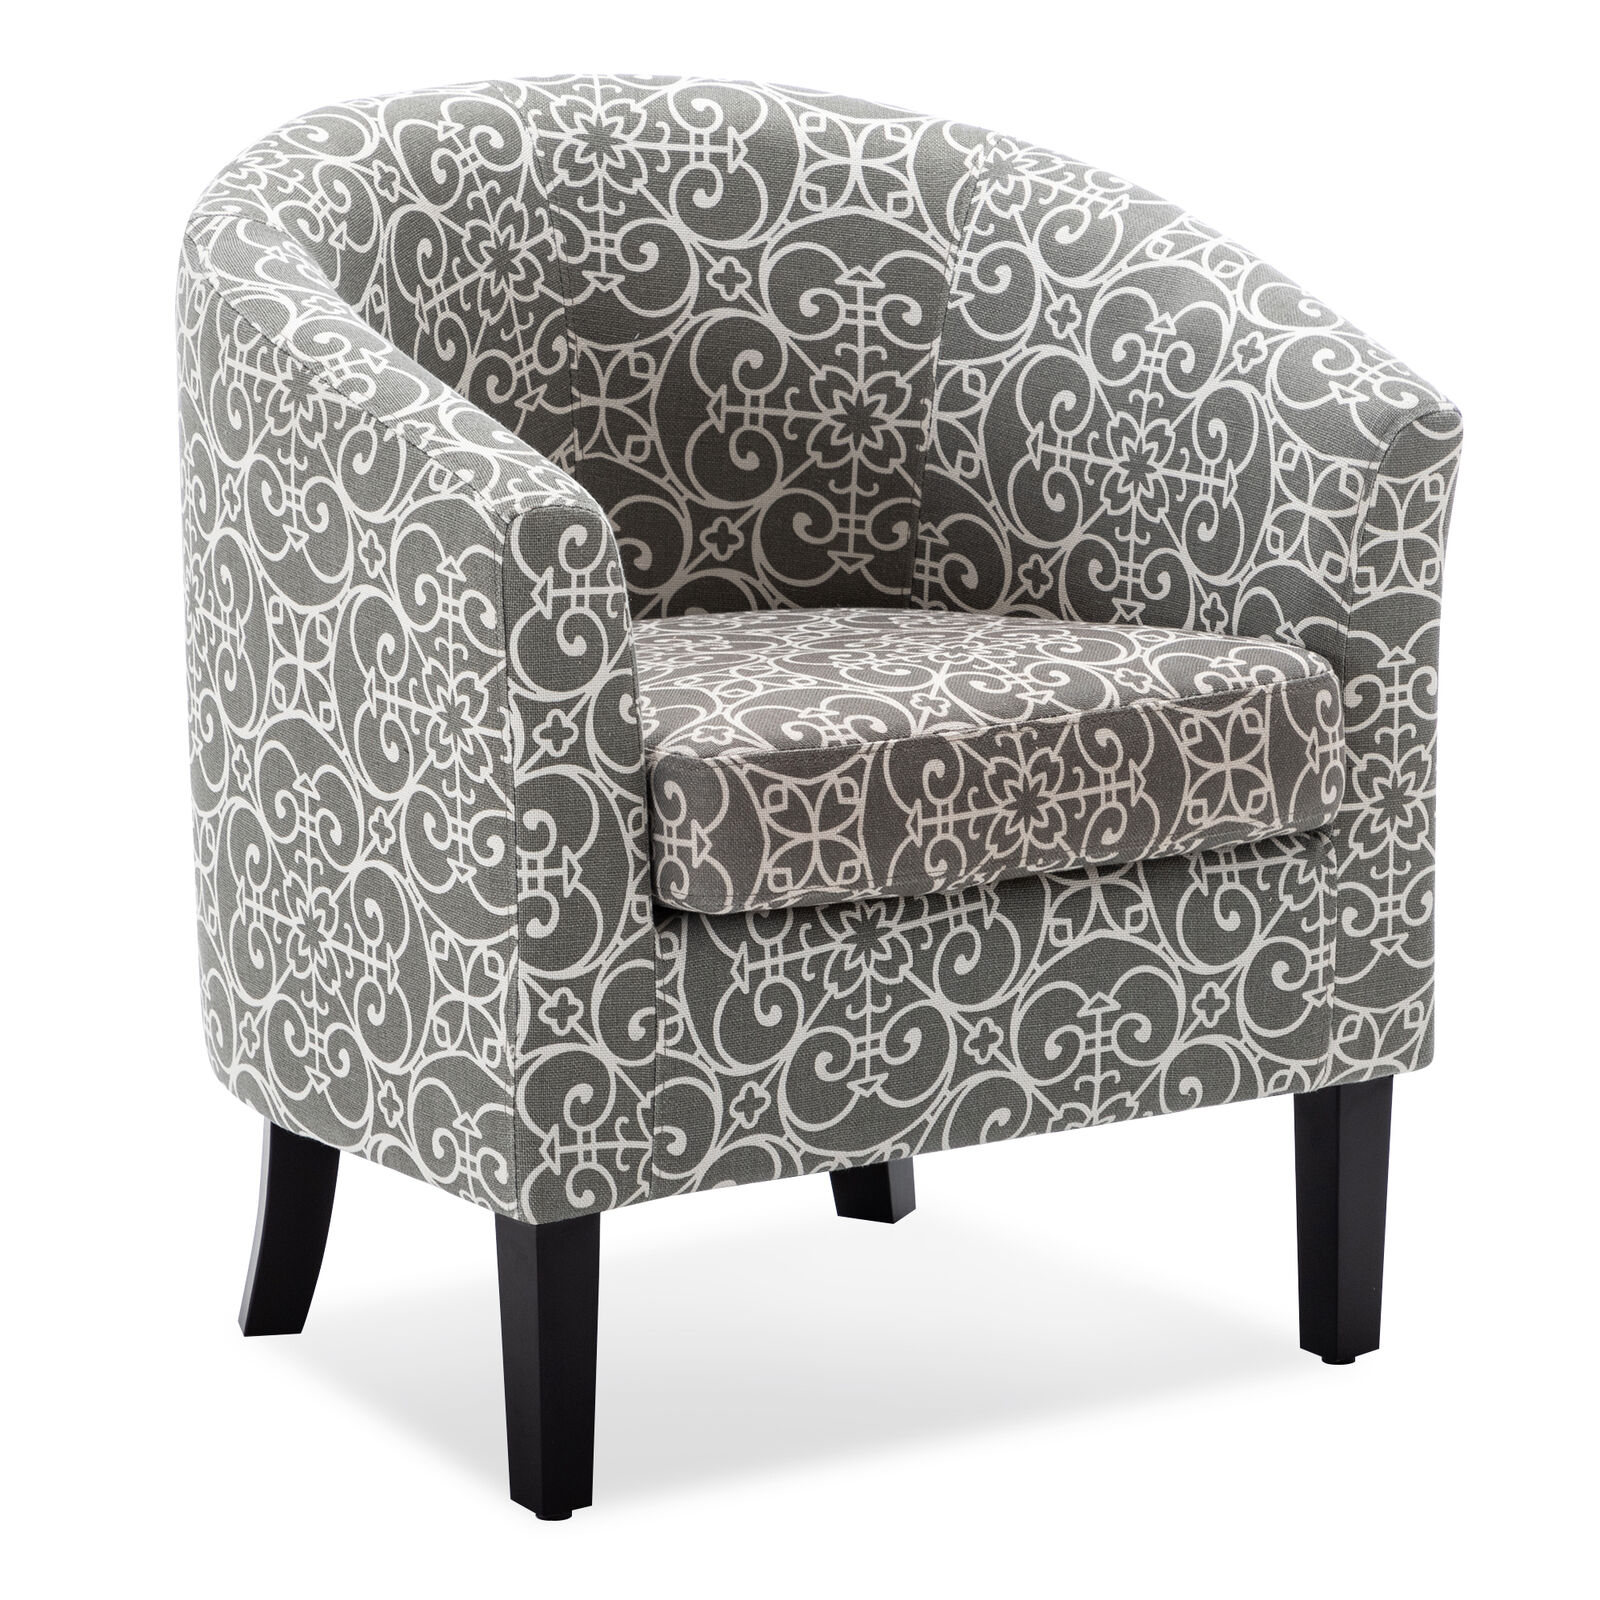 Picture of: Fabric Club Chair Lounge Arm Living Room Upholstered Floral Accent Armchair Seat For Sale Online Ebay